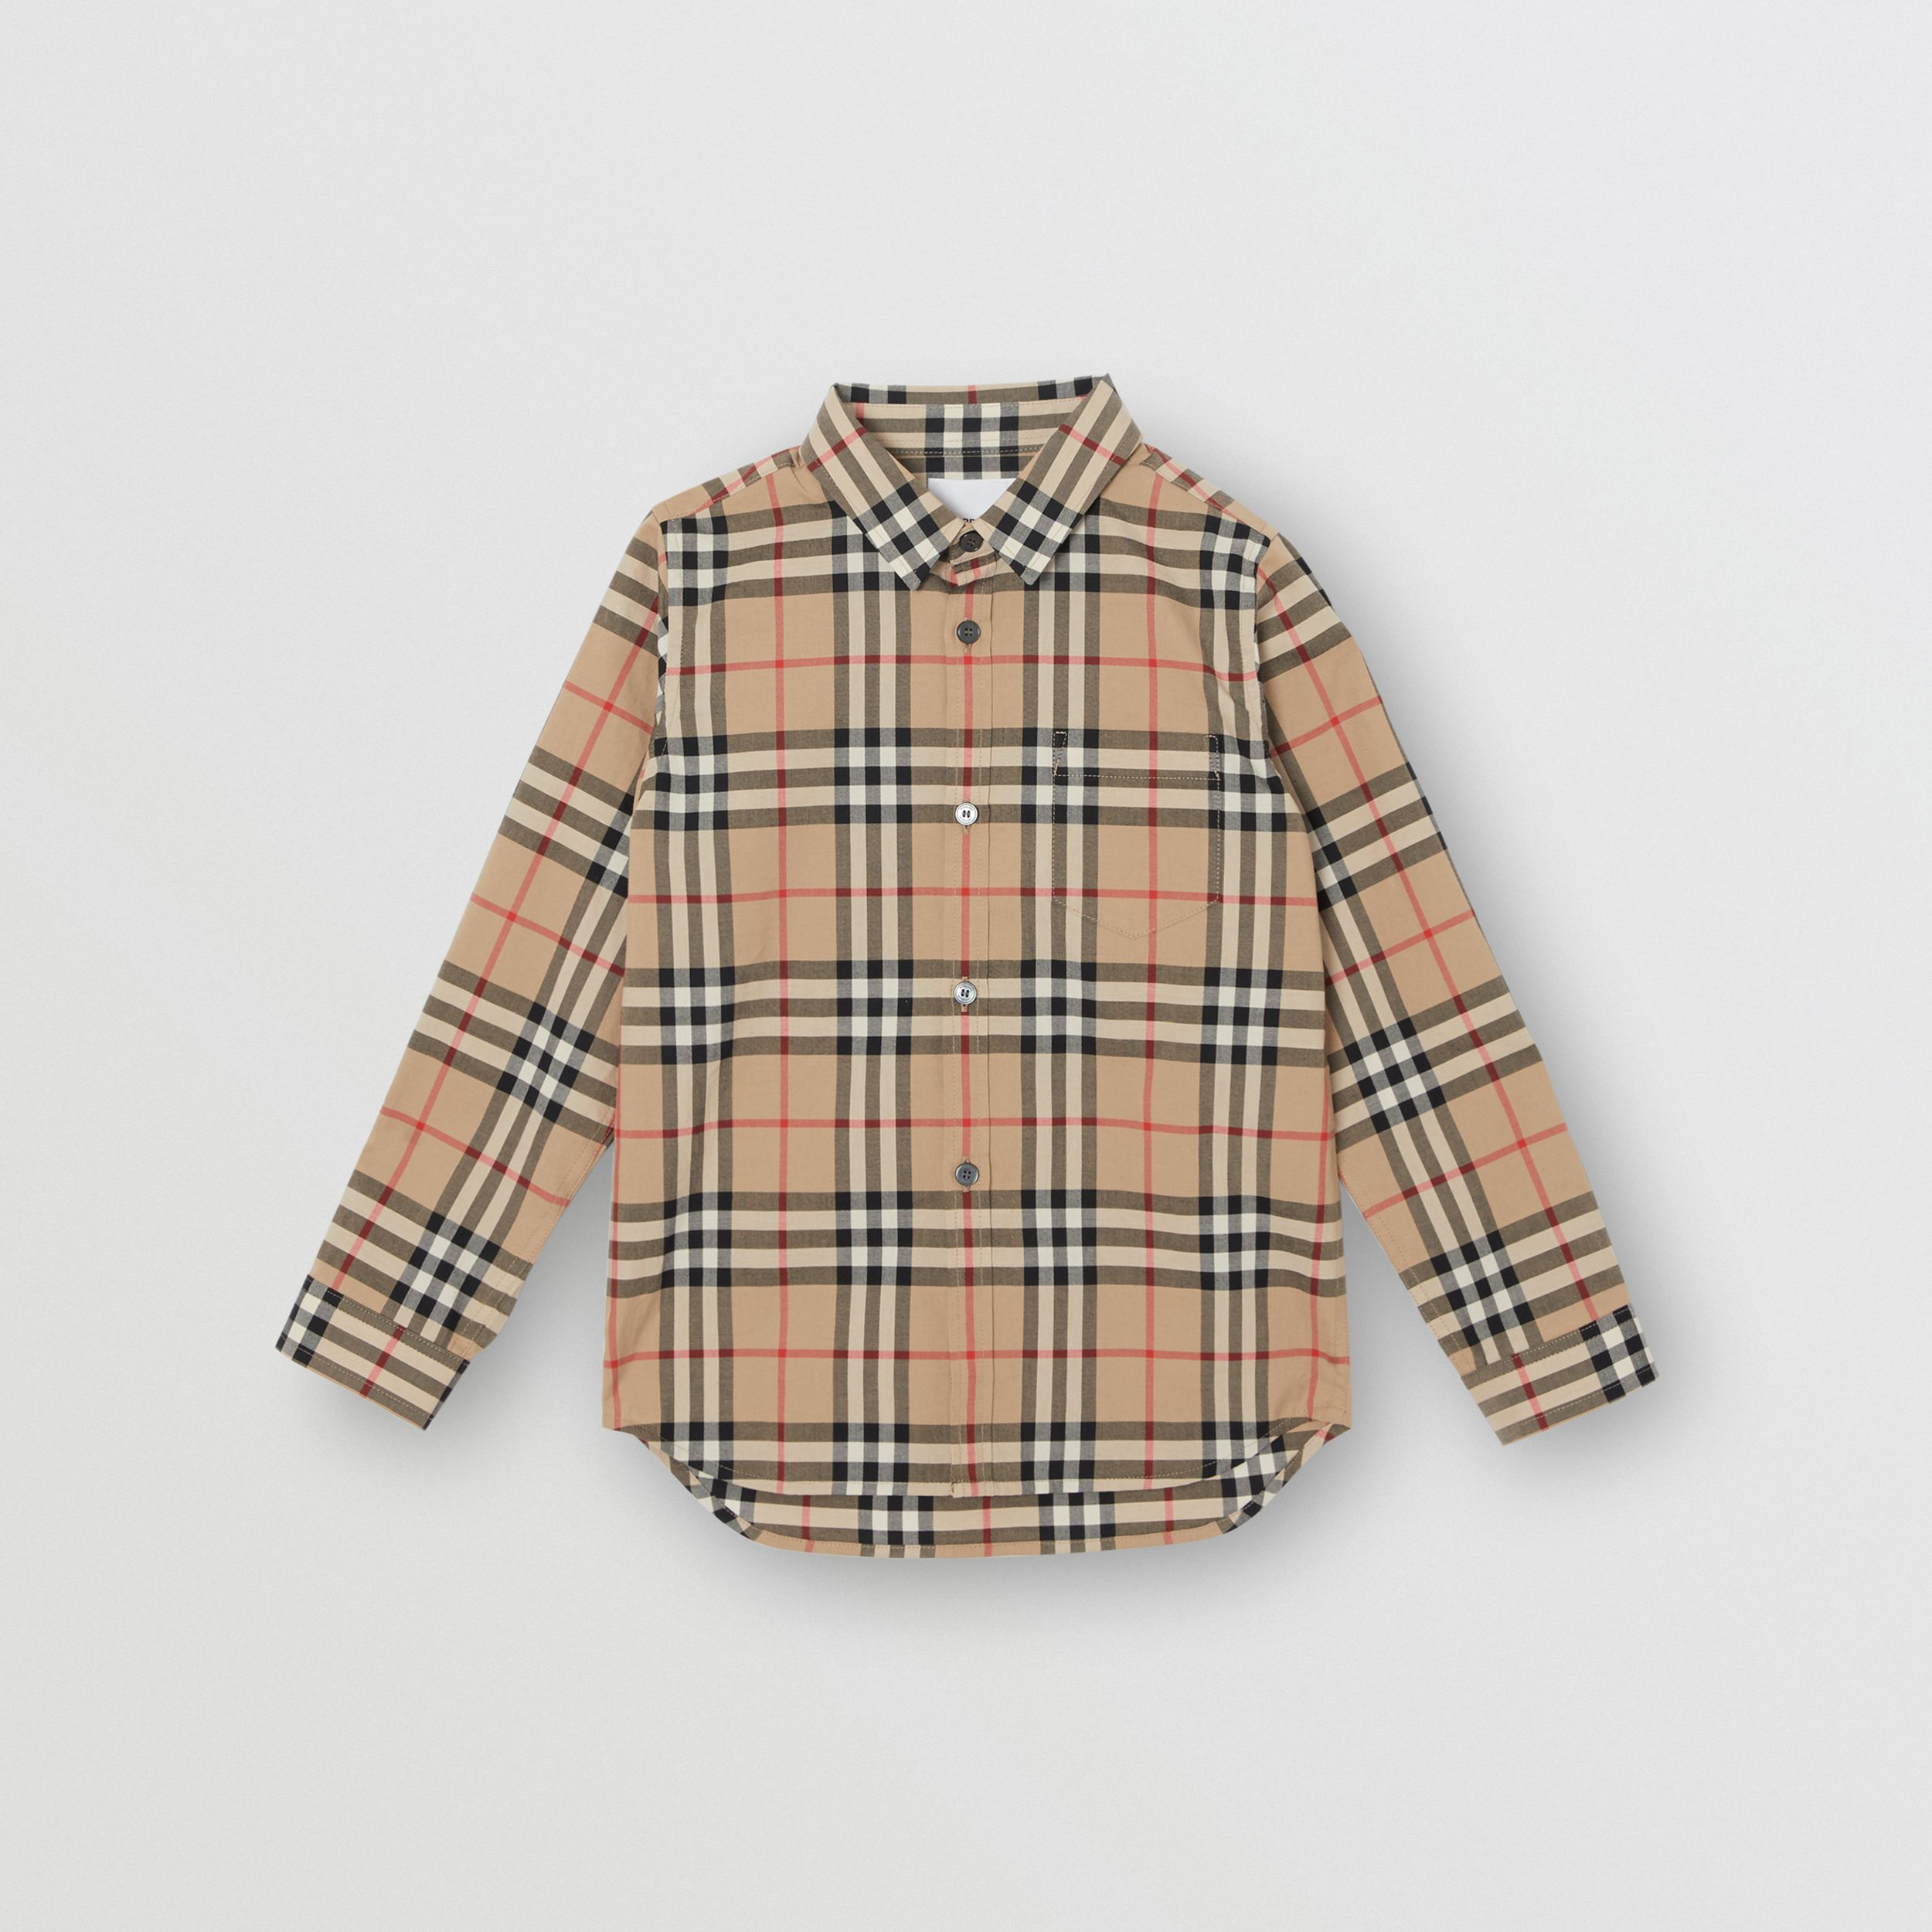 Vintage Check Cotton Poplin Shirt in Archive Beige | Burberry Australia - 1